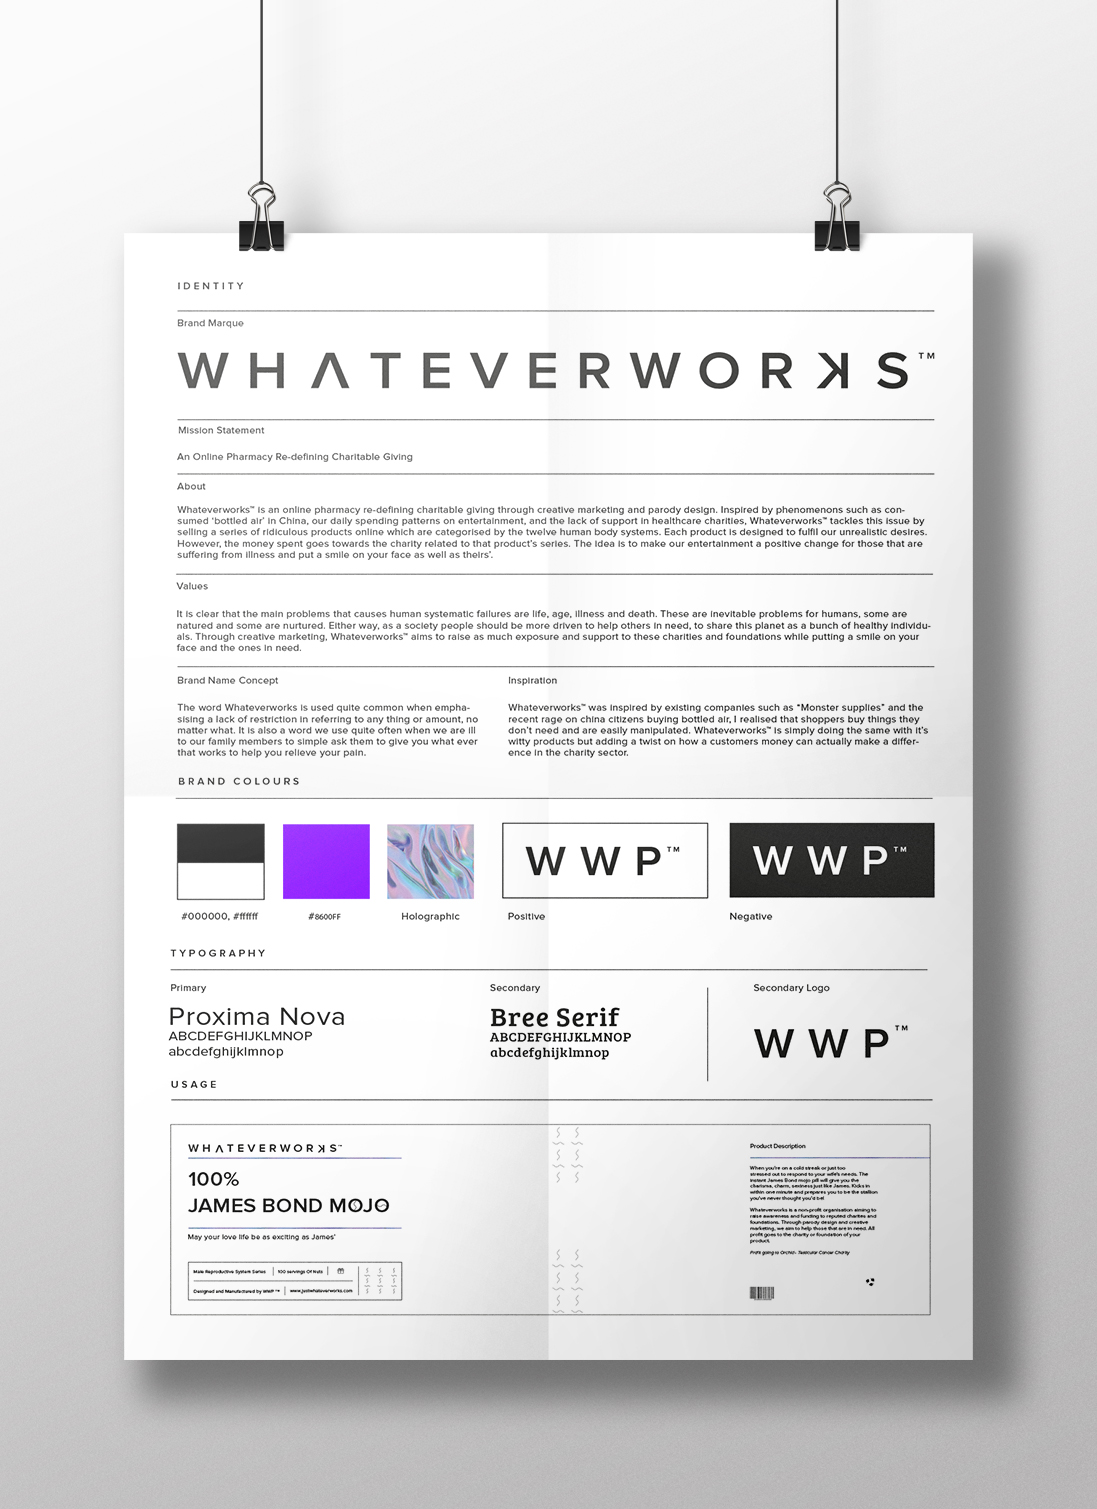 WWP identity poster mock